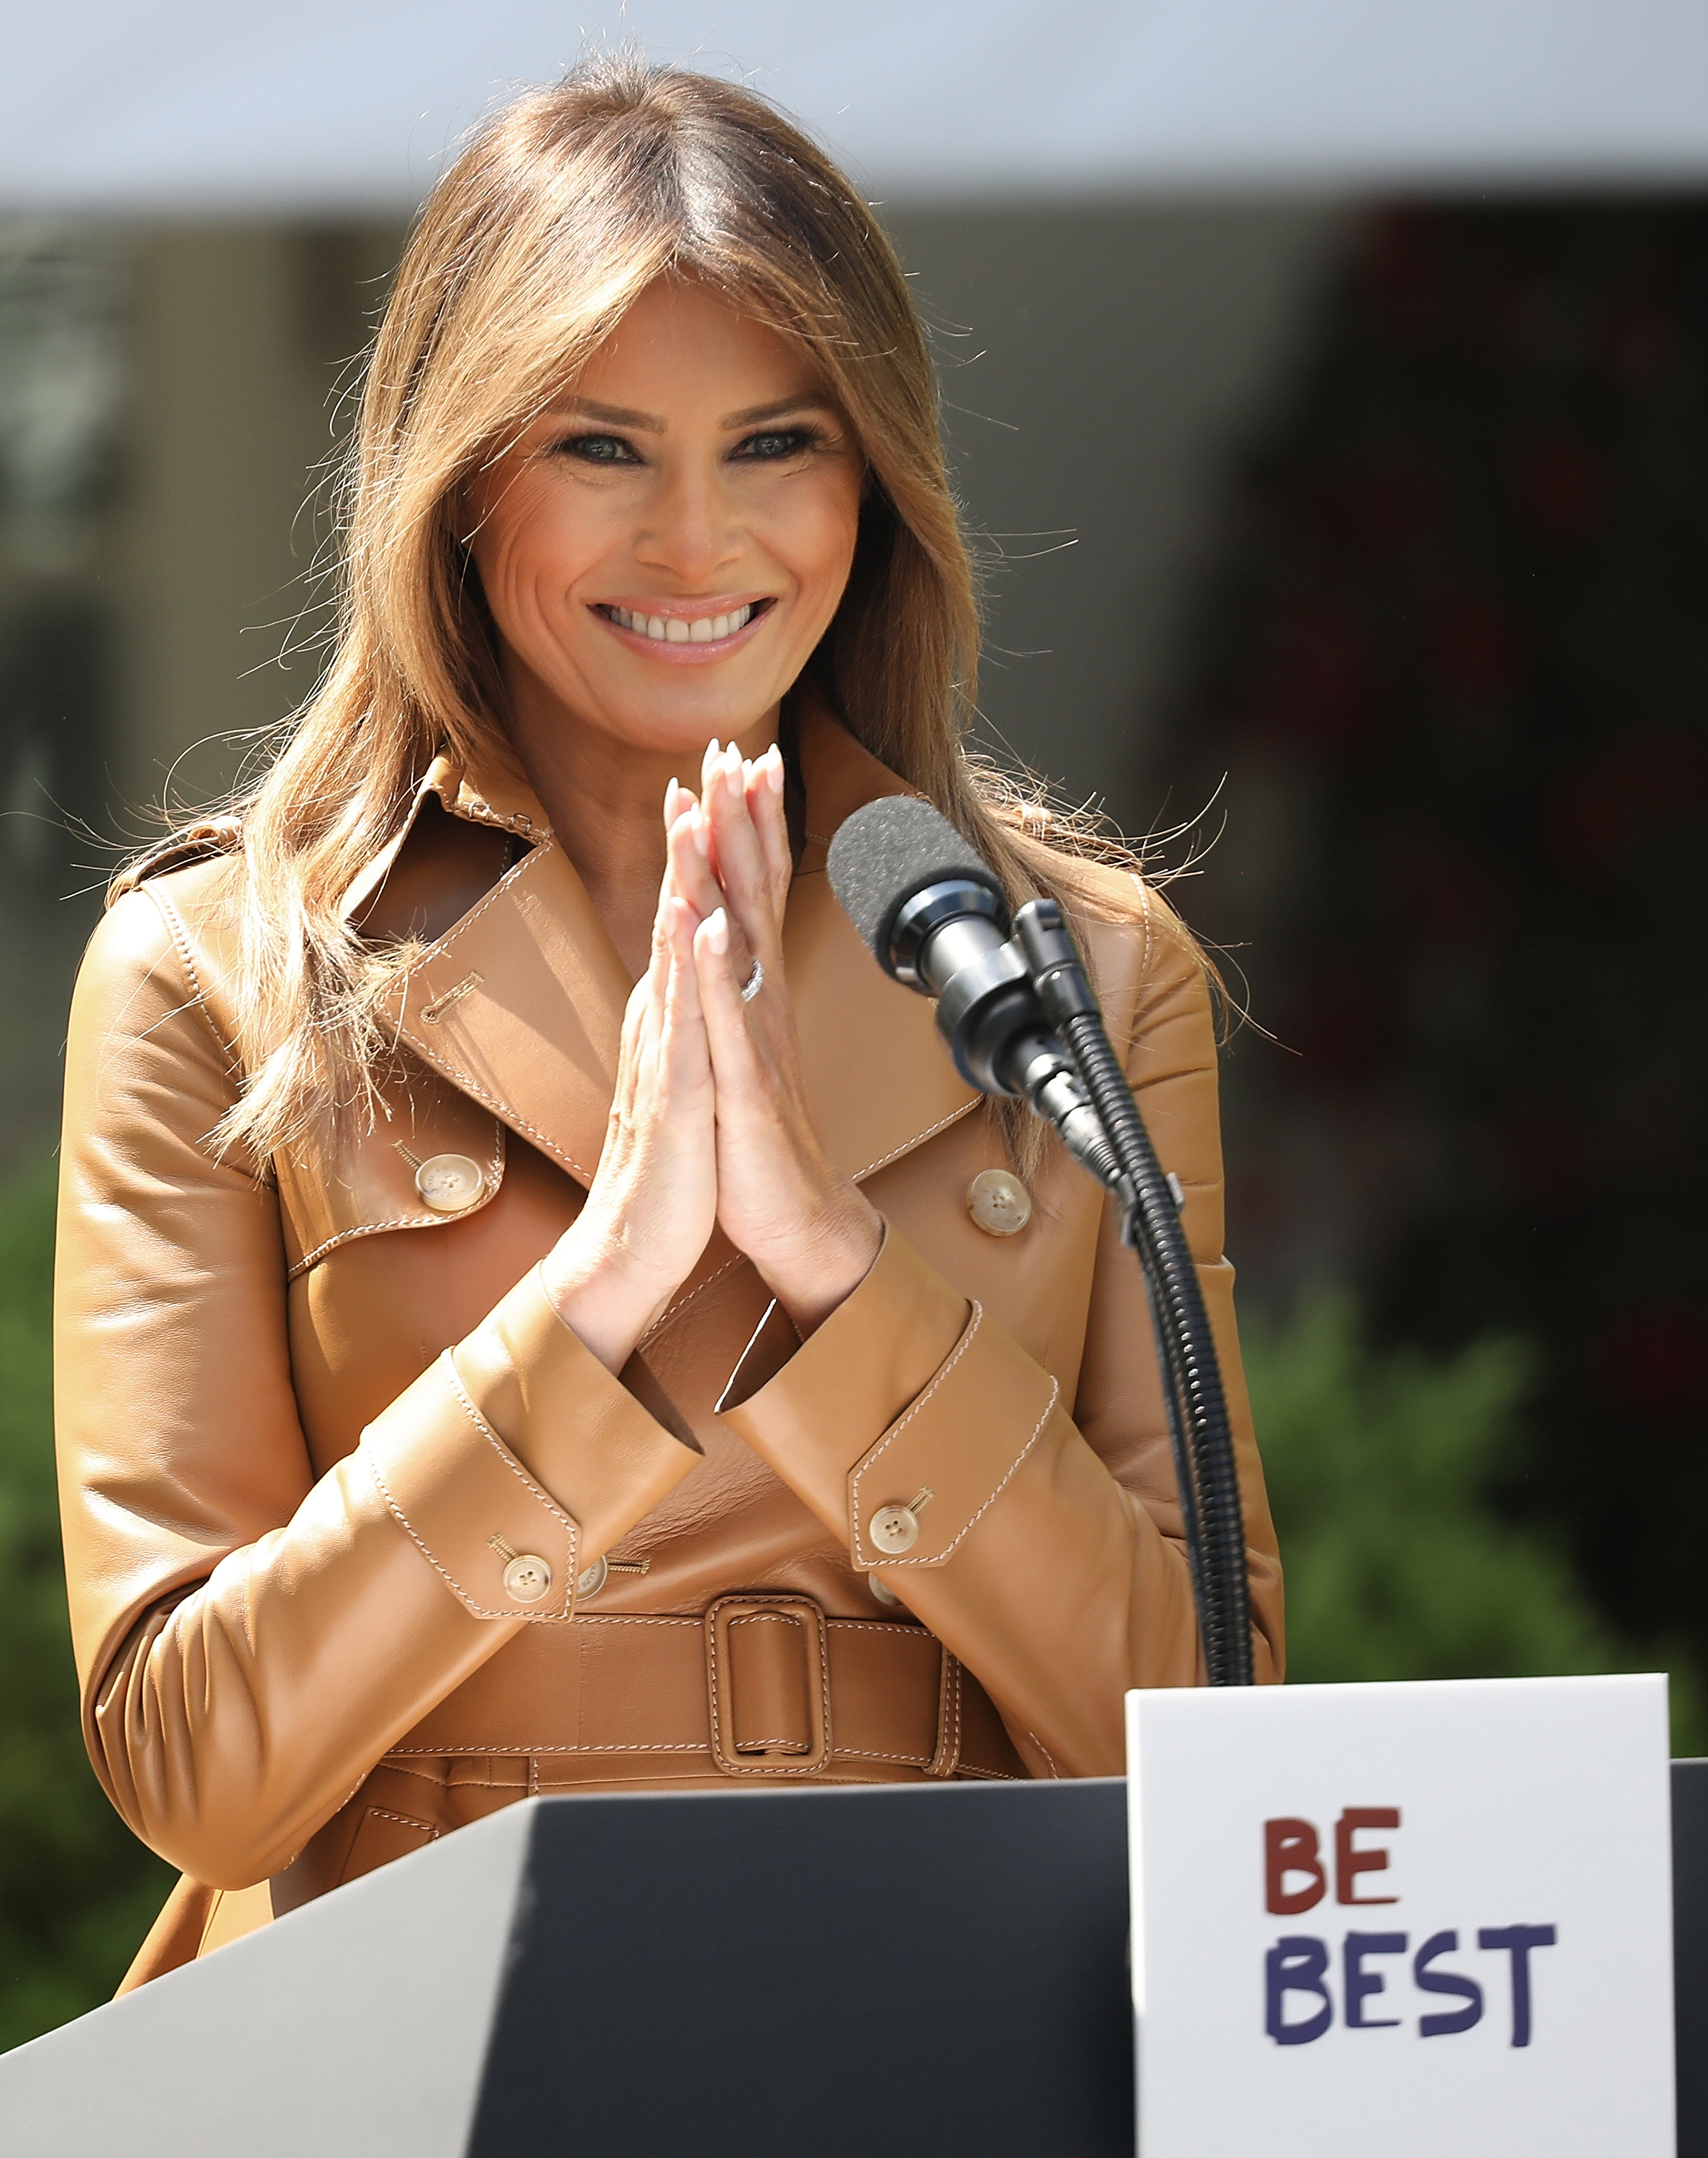 US First Lady Melania Trump speaks in the Rose Garden of the White House May 7, 2018 in Washington, DC (Getty Images)